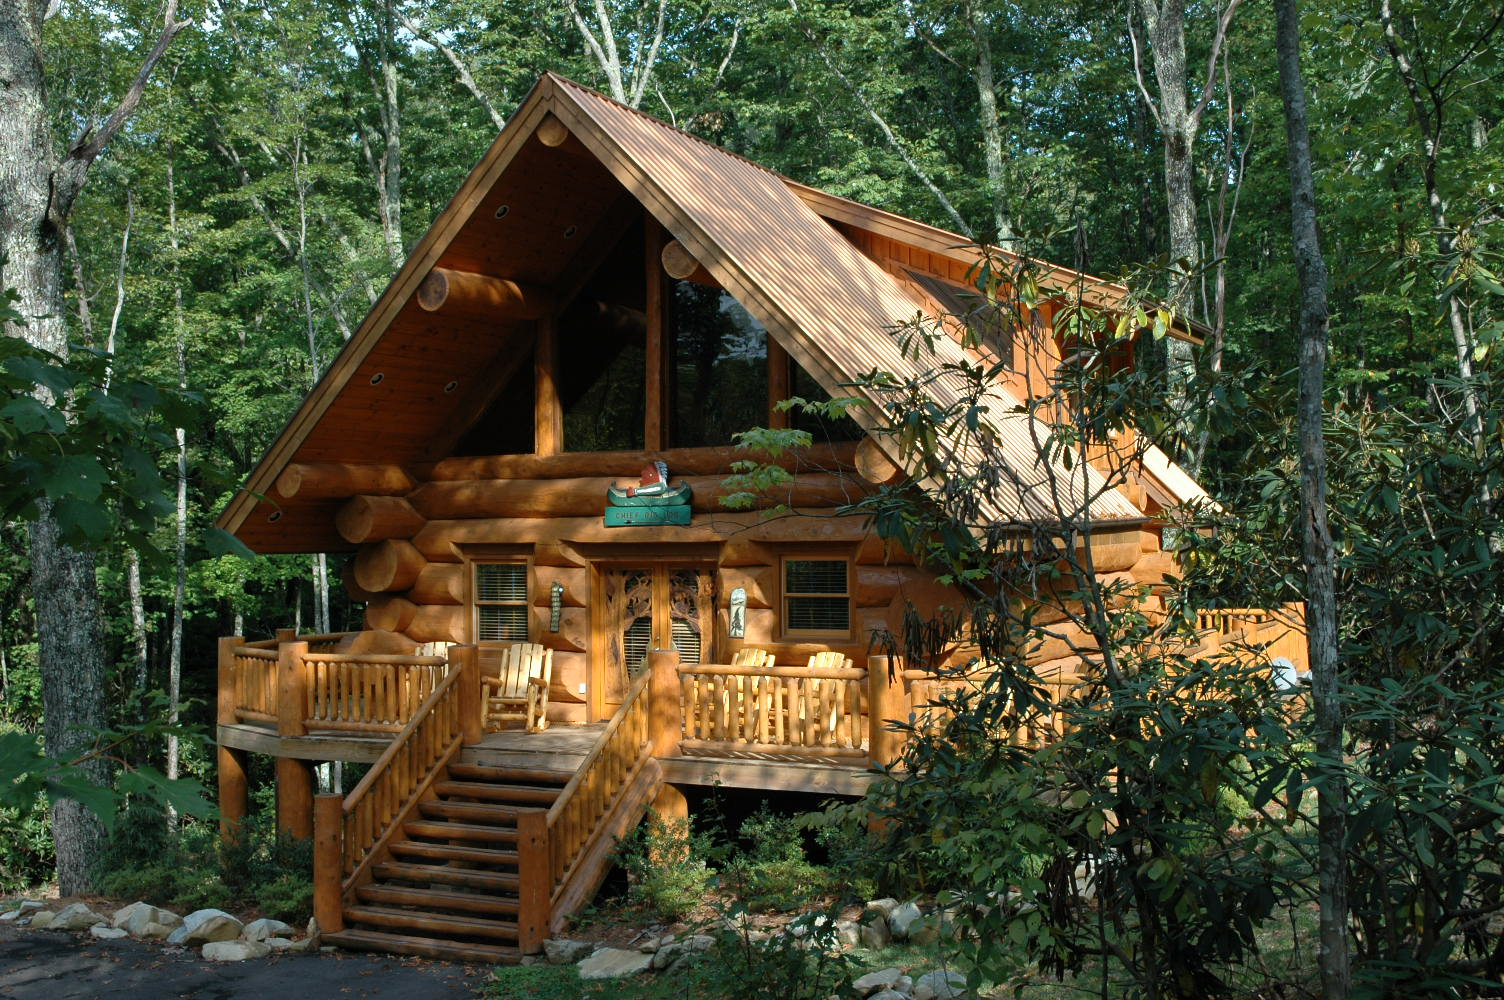 affordable smokies cabins cheap rentals gatlinburg pool tennessee smoky tn the rental cabin in mountains secluded s